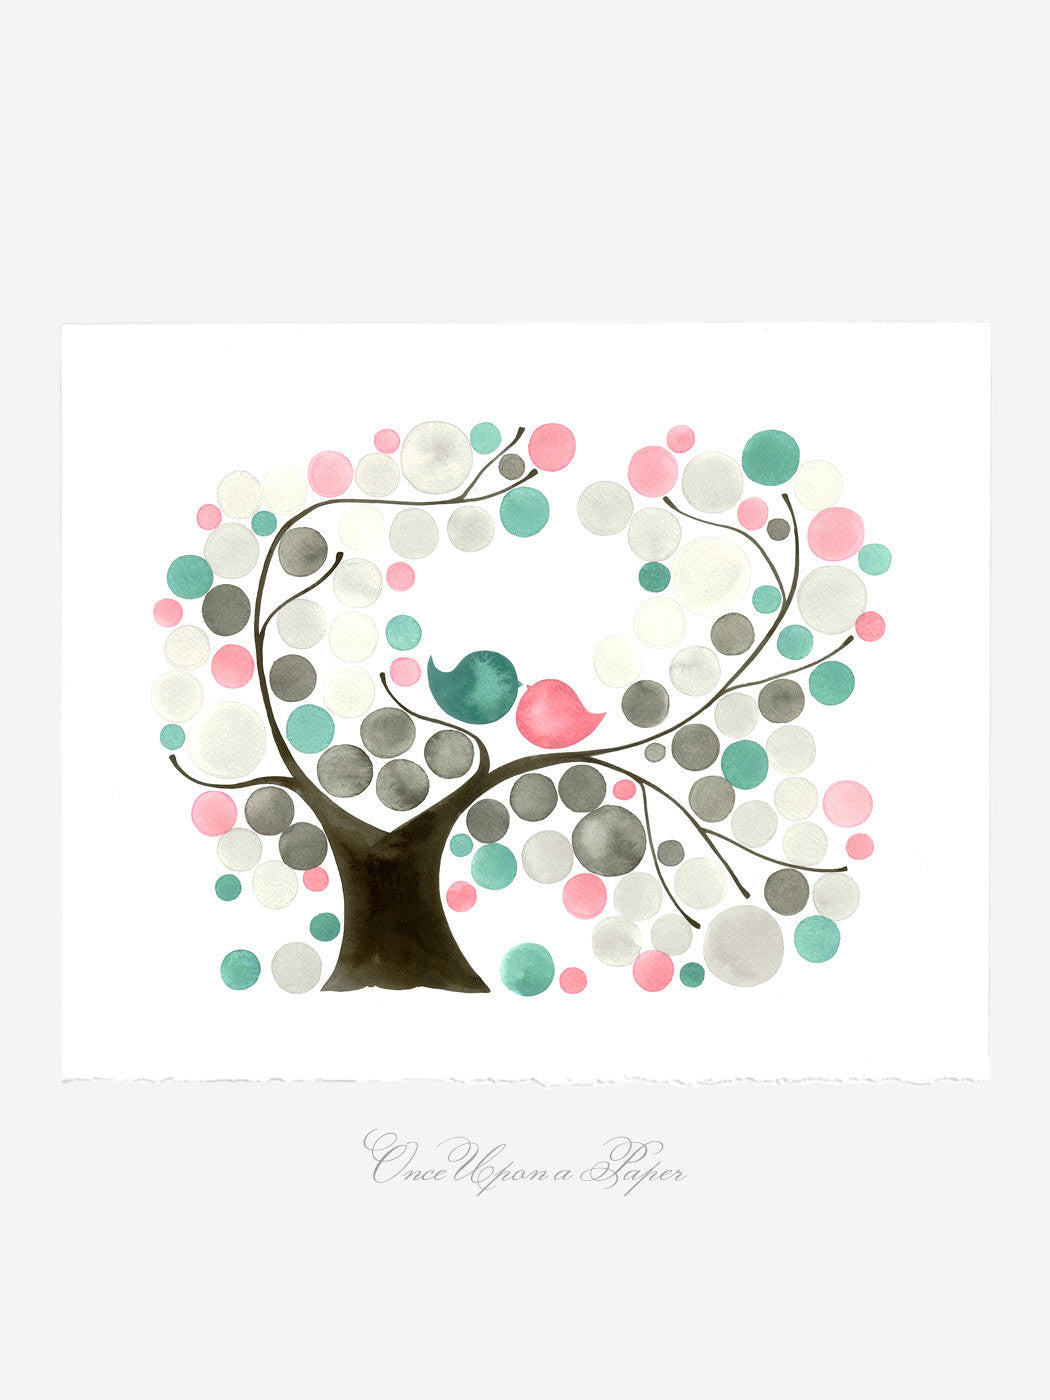 Annyversary Gift - Oval Garden Tree - Giclee Art Print Reproduction of Watercolor Painting -Trees of Life Collection